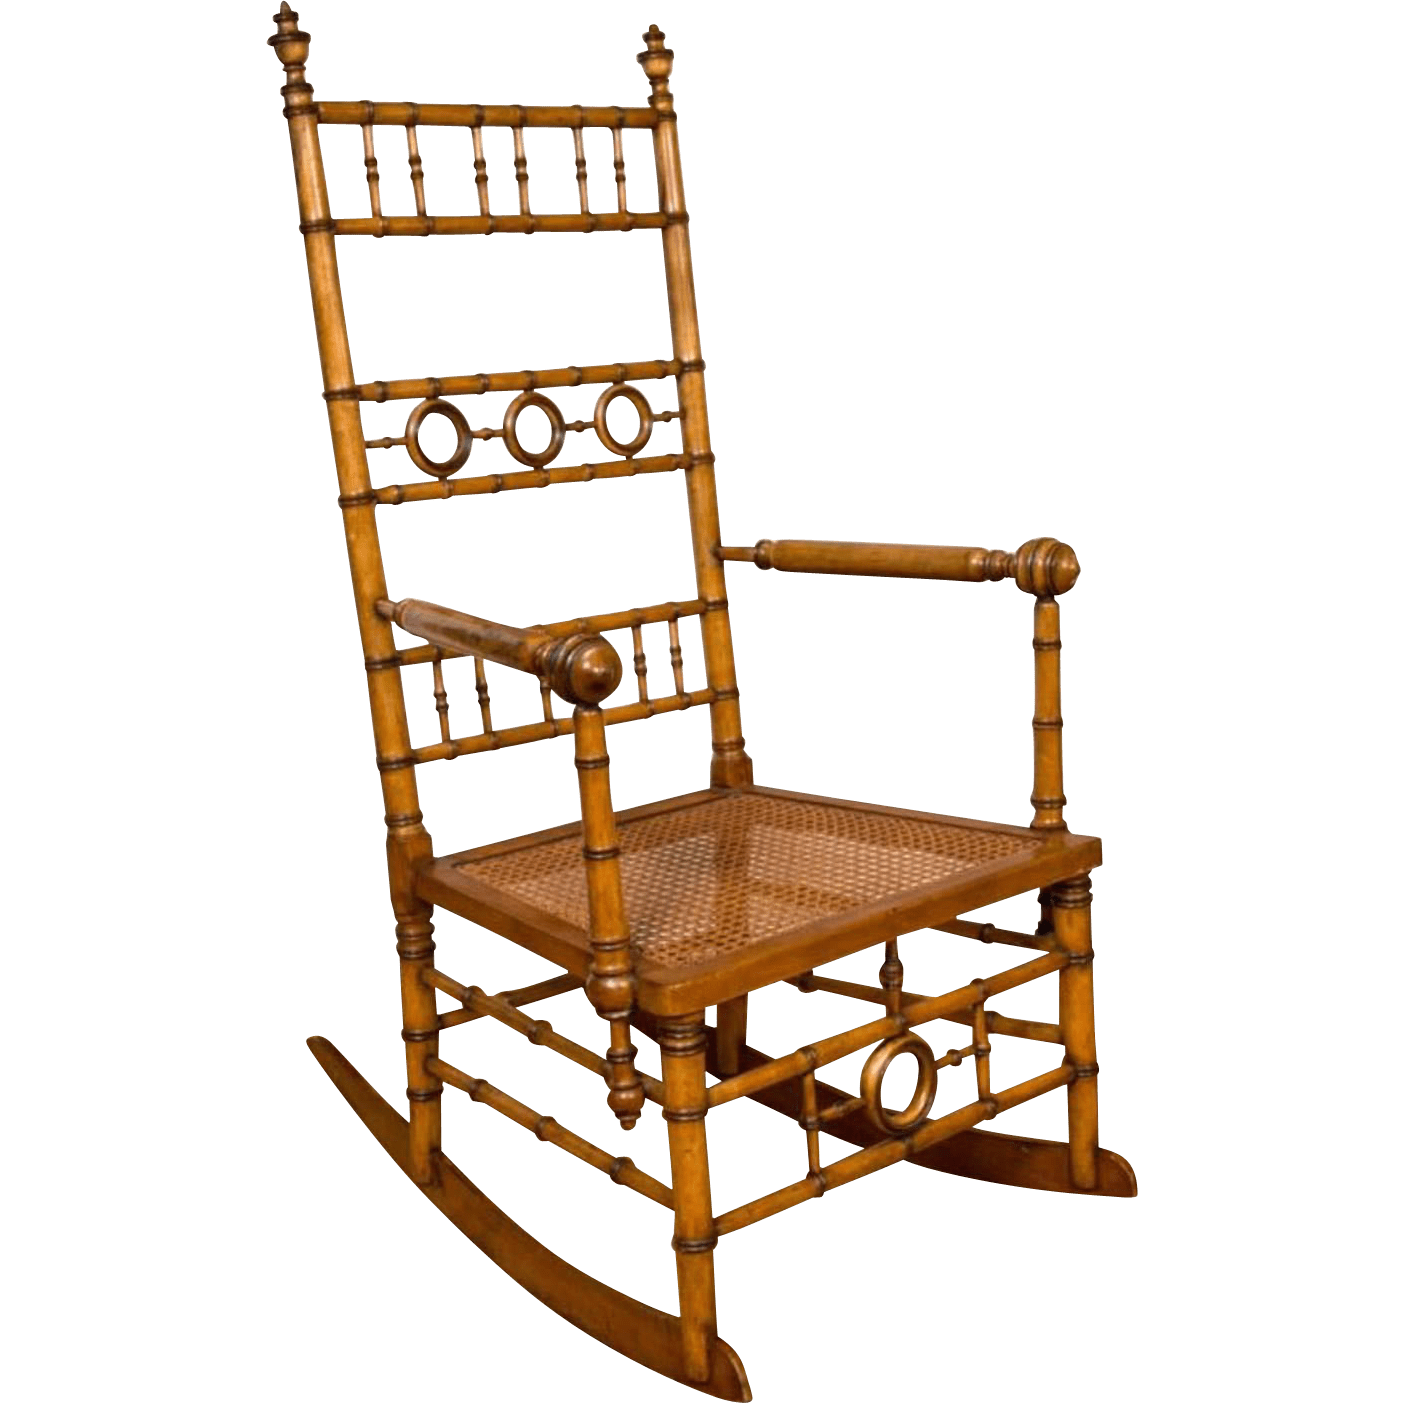 rocking chair realty banquet covers for sale in canada aesthetic movement faux bamboo attributed to